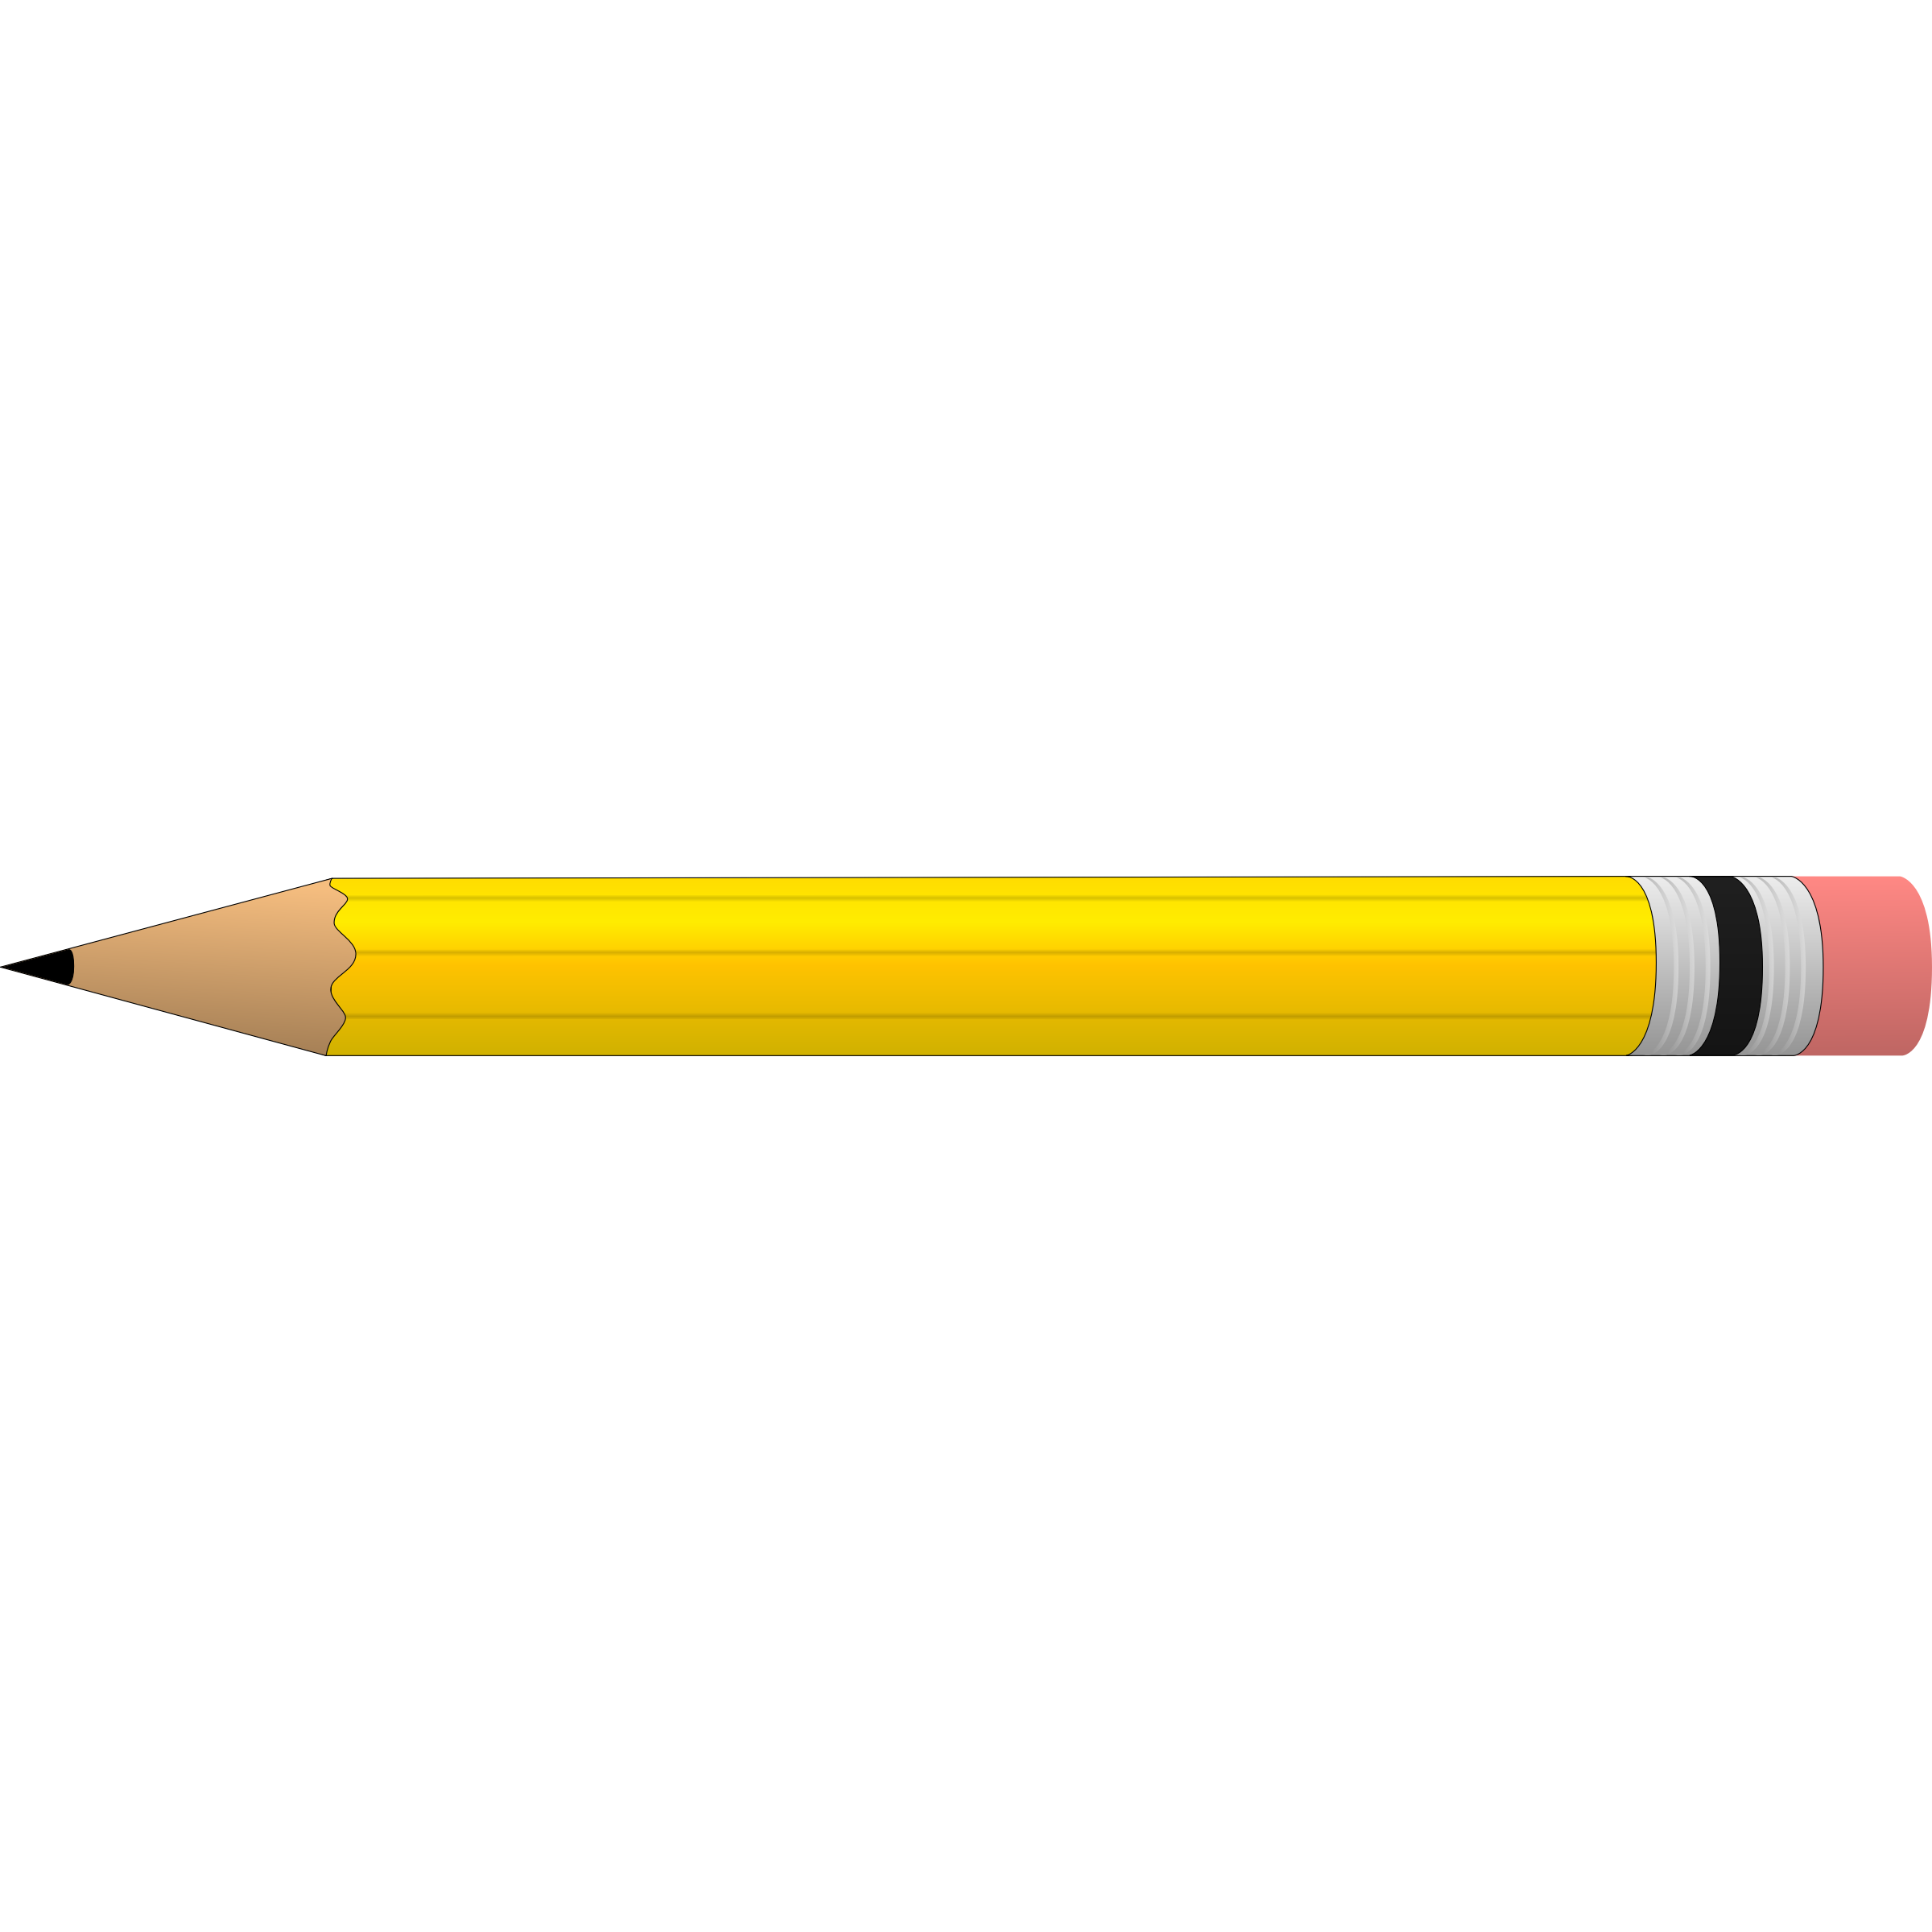 Pencil clipart transparent background Cliparts Zone Pencil Cliparts Clipart